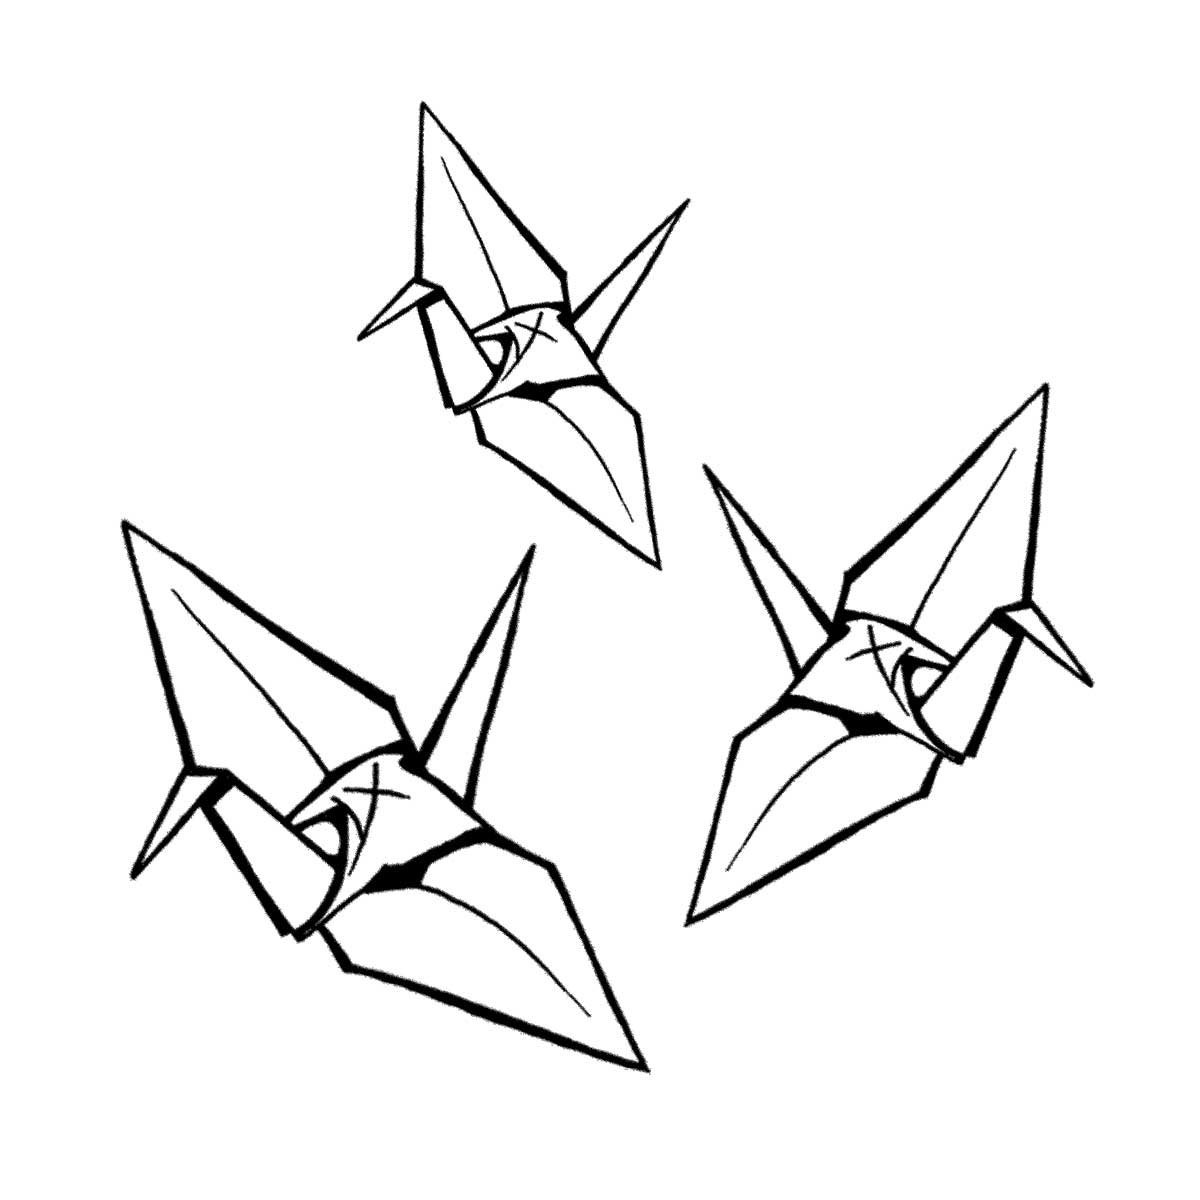 1200x1200 Origami Crane Drawing. 25 Best Ideas About Paper Crane On, Tadpole